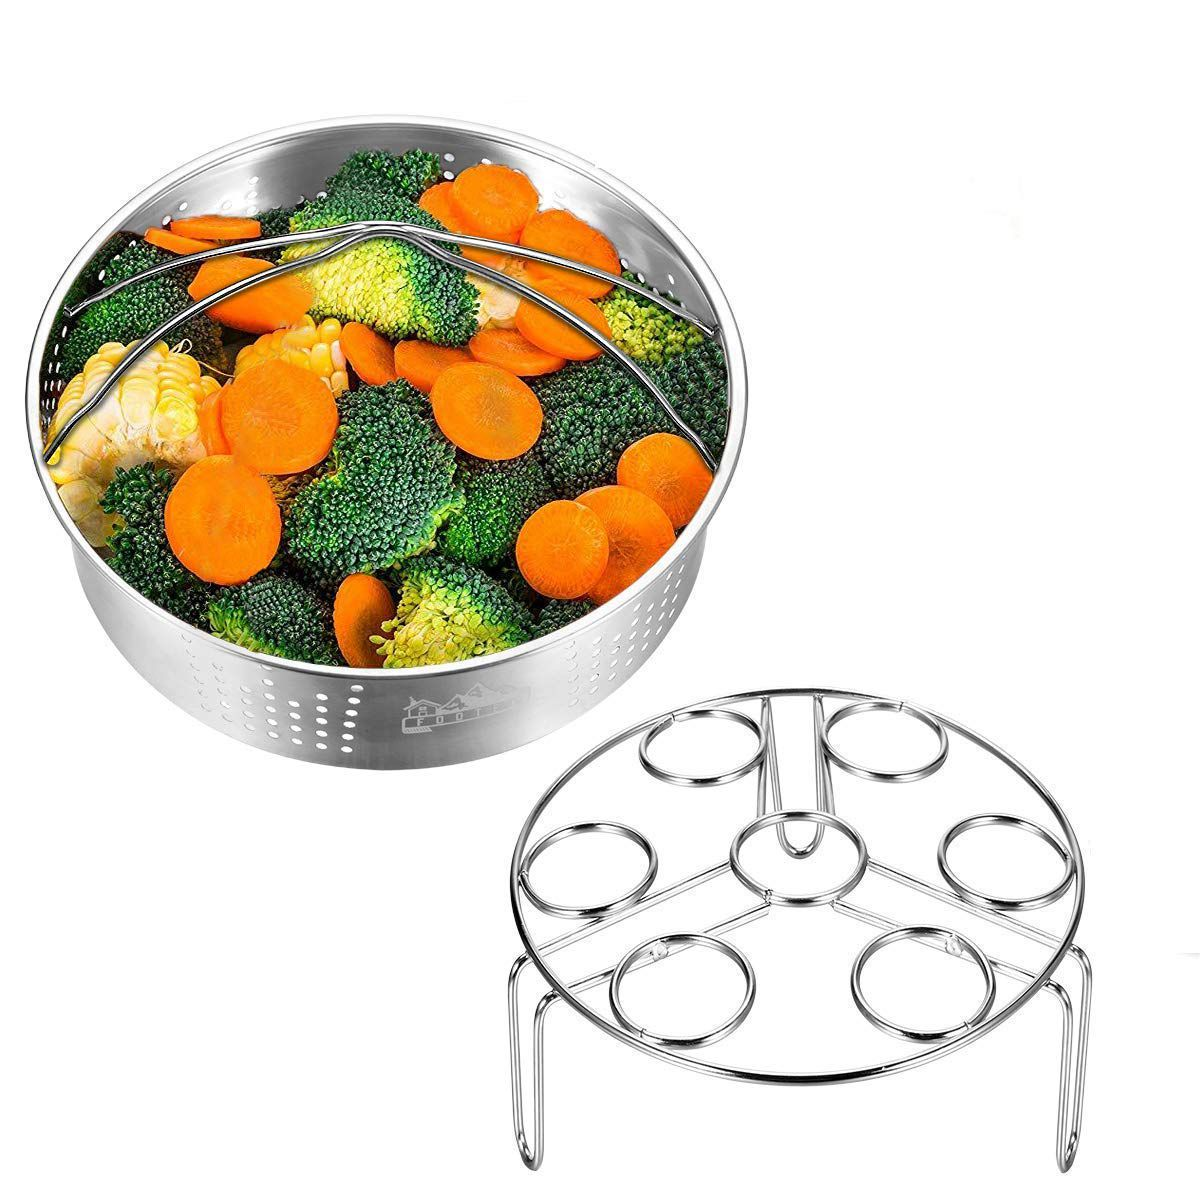 Steamer Basket With Egg Steamer Rack For Instant And Pressure Cooker Accessories Vegetable Steam Rack Stand Fits 5,6,8 Qt Pres